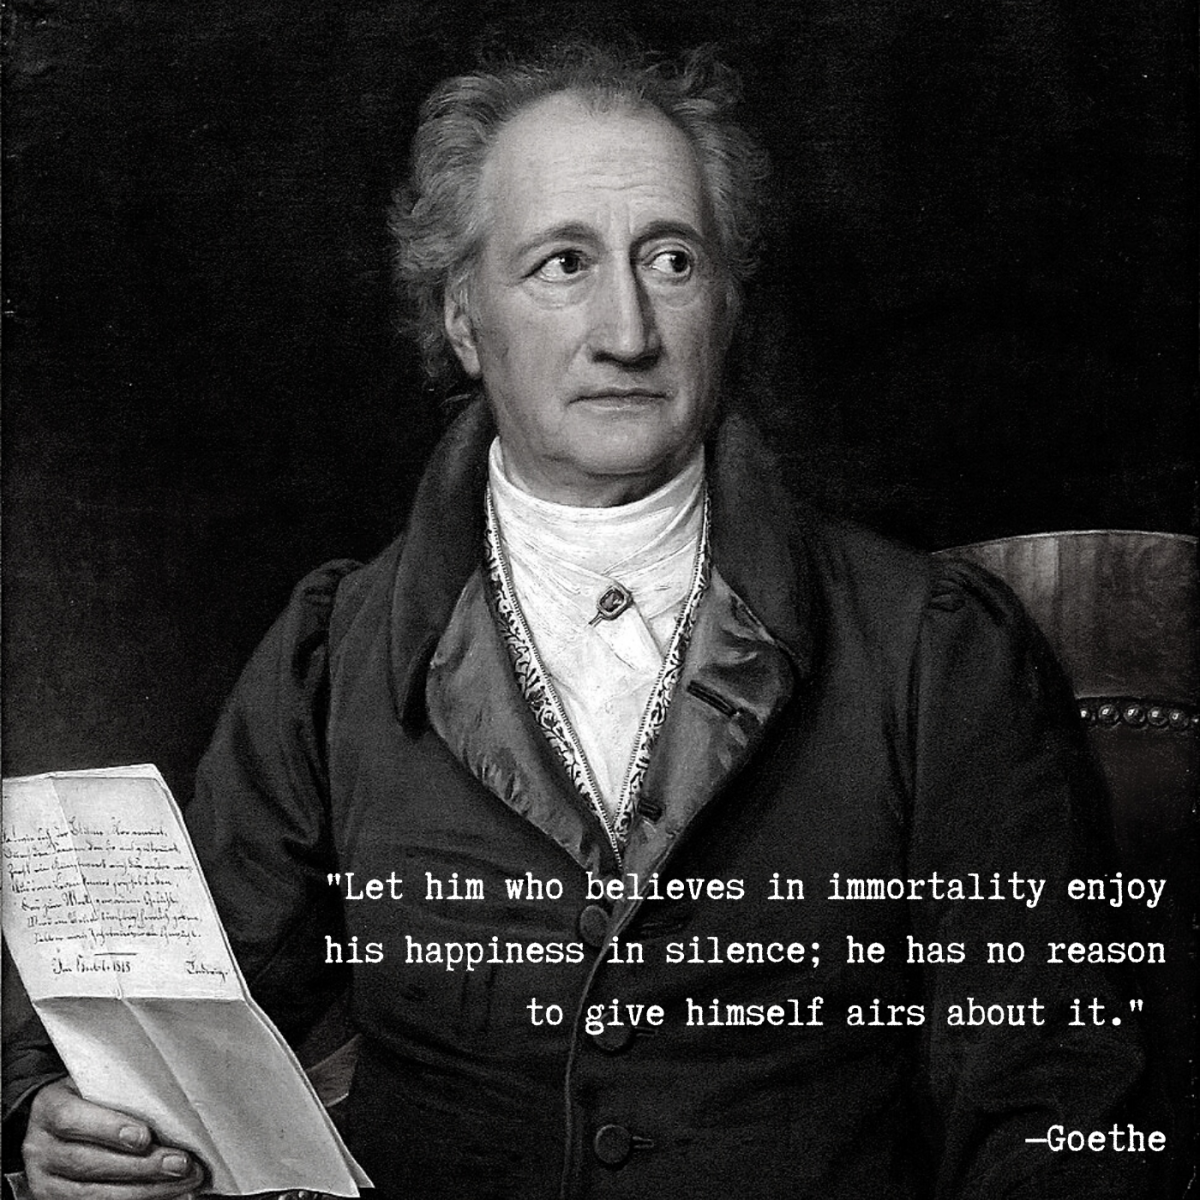 """Let him who believes in immortality enjoy his happiness in silence; he has no reason to give himself airs about it."" —Goethe"